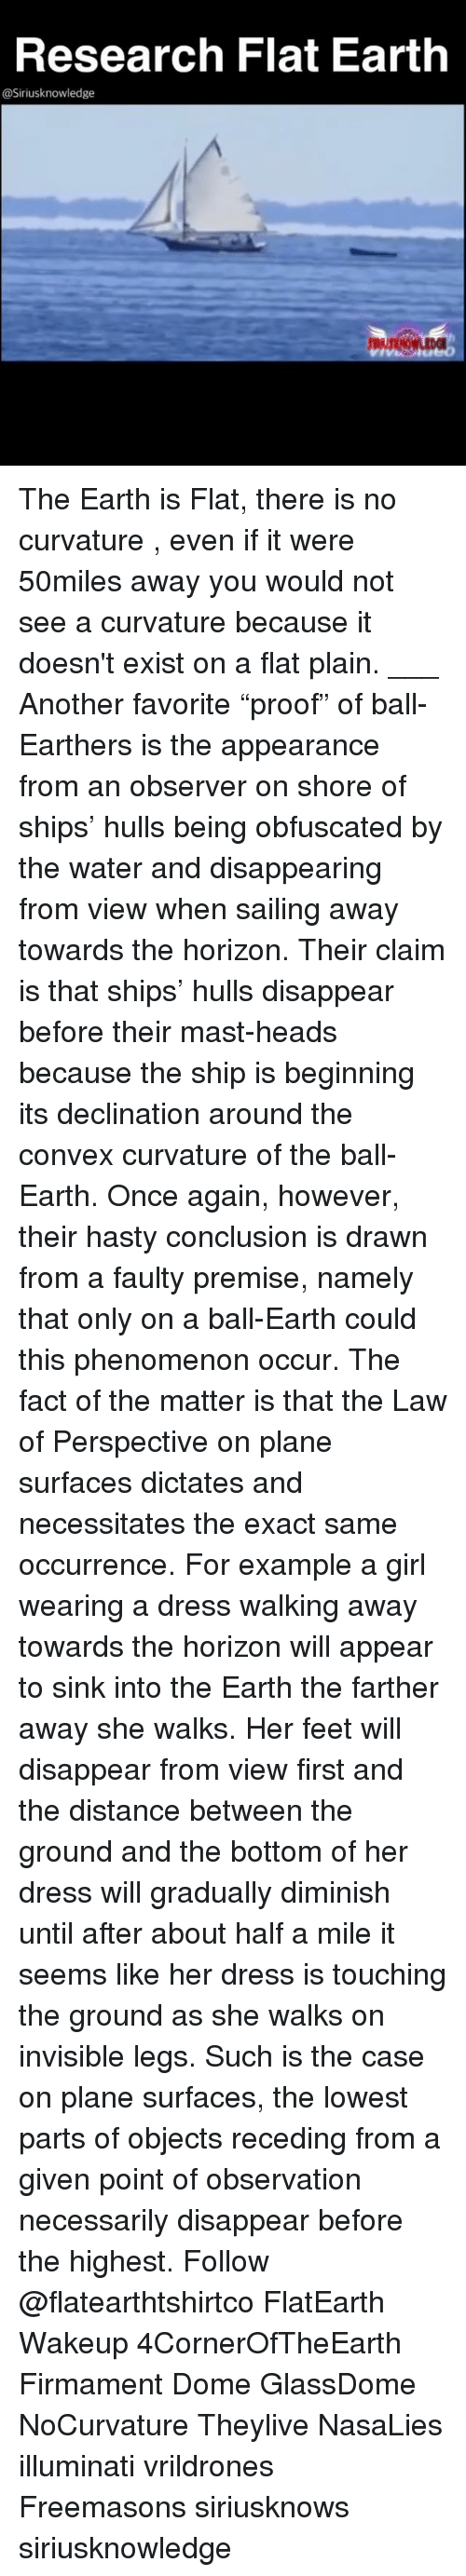 "Illuminati, Memes, and Dress: Research Flat Earth  @Siriusknowledge The Earth is Flat, there is no curvature , even if it were 50miles away you would not see a curvature because it doesn't exist on a flat plain. ___ Another favorite ""proof"" of ball-Earthers is the appearance from an observer on shore of ships' hulls being obfuscated by the water and disappearing from view when sailing away towards the horizon. Their claim is that ships' hulls disappear before their mast-heads because the ship is beginning its declination around the convex curvature of the ball-Earth. Once again, however, their hasty conclusion is drawn from a faulty premise, namely that only on a ball-Earth could this phenomenon occur. The fact of the matter is that the Law of Perspective on plane surfaces dictates and necessitates the exact same occurrence. For example a girl wearing a dress walking away towards the horizon will appear to sink into the Earth the farther away she walks. Her feet will disappear from view first and the distance between the ground and the bottom of her dress will gradually diminish until after about half a mile it seems like her dress is touching the ground as she walks on invisible legs. Such is the case on plane surfaces, the lowest parts of objects receding from a given point of observation necessarily disappear before the highest. Follow @flatearthtshirtco FlatEarth Wakeup 4CornerOfTheEarth Firmament Dome GlassDome NoCurvature Theylive NasaLies illuminati vrildrones Freemasons siriusknows siriusknowledge"